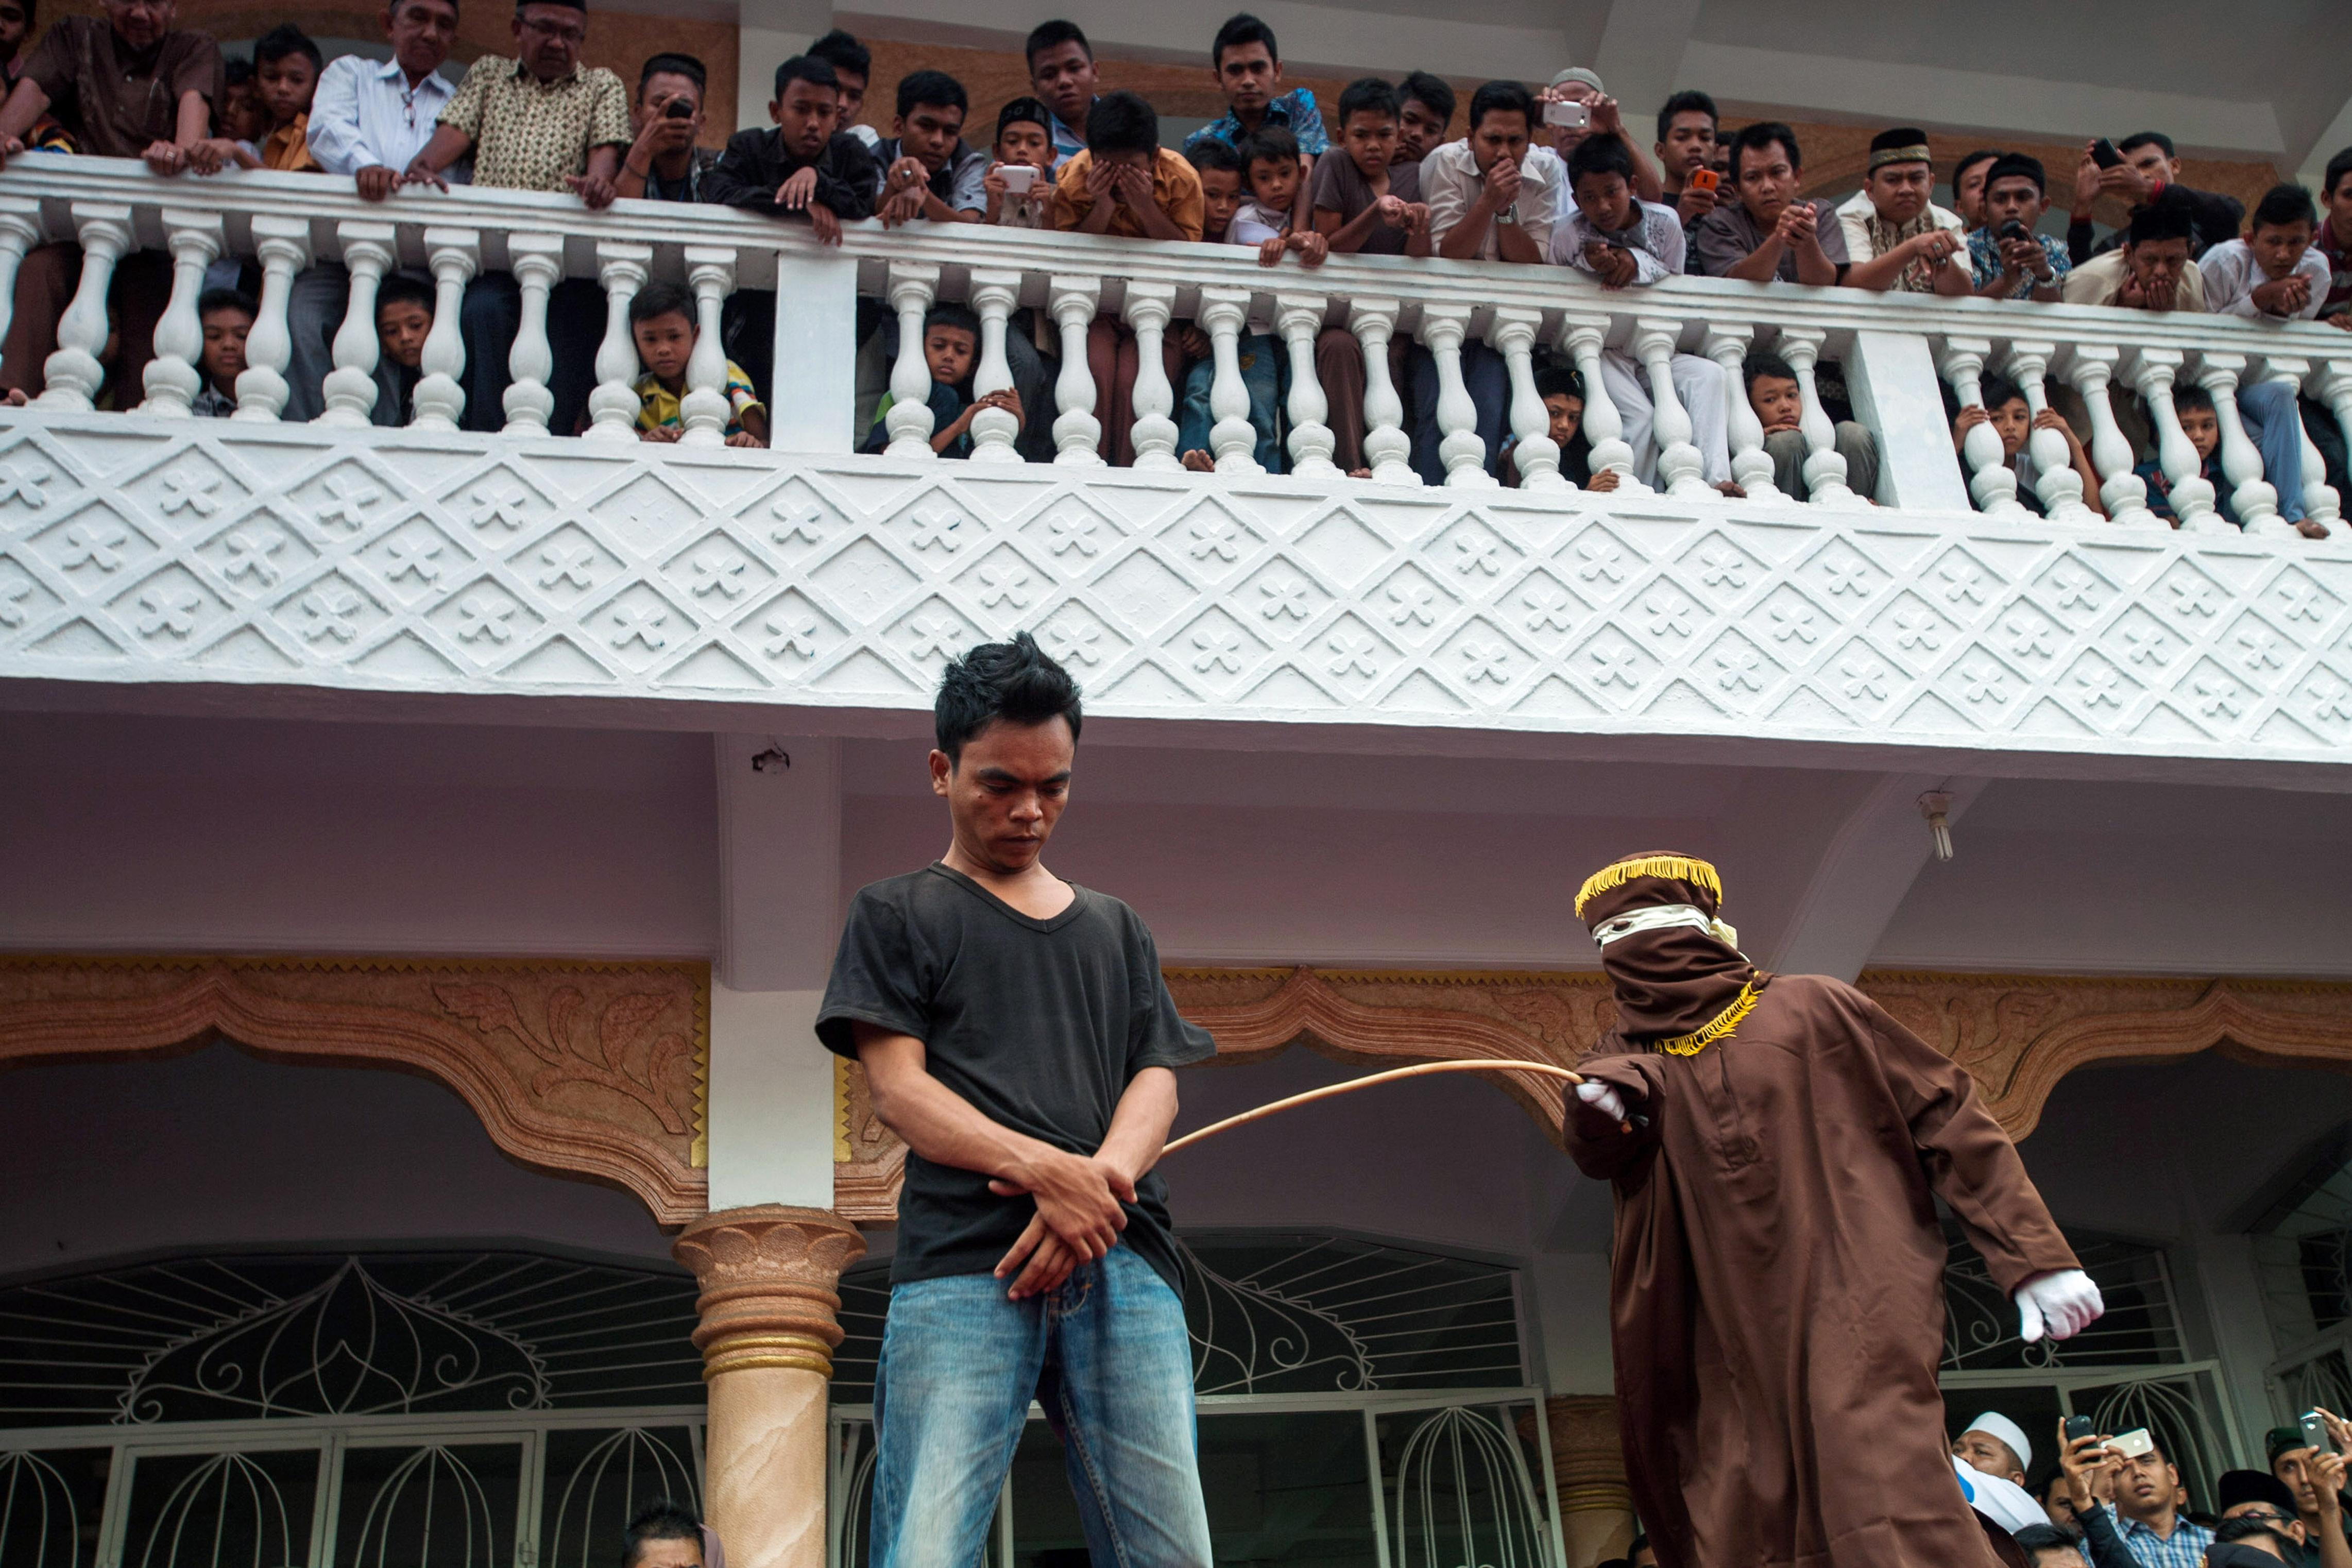 Indonesian Aceh Proposes 100 Lashes For Gay Sex